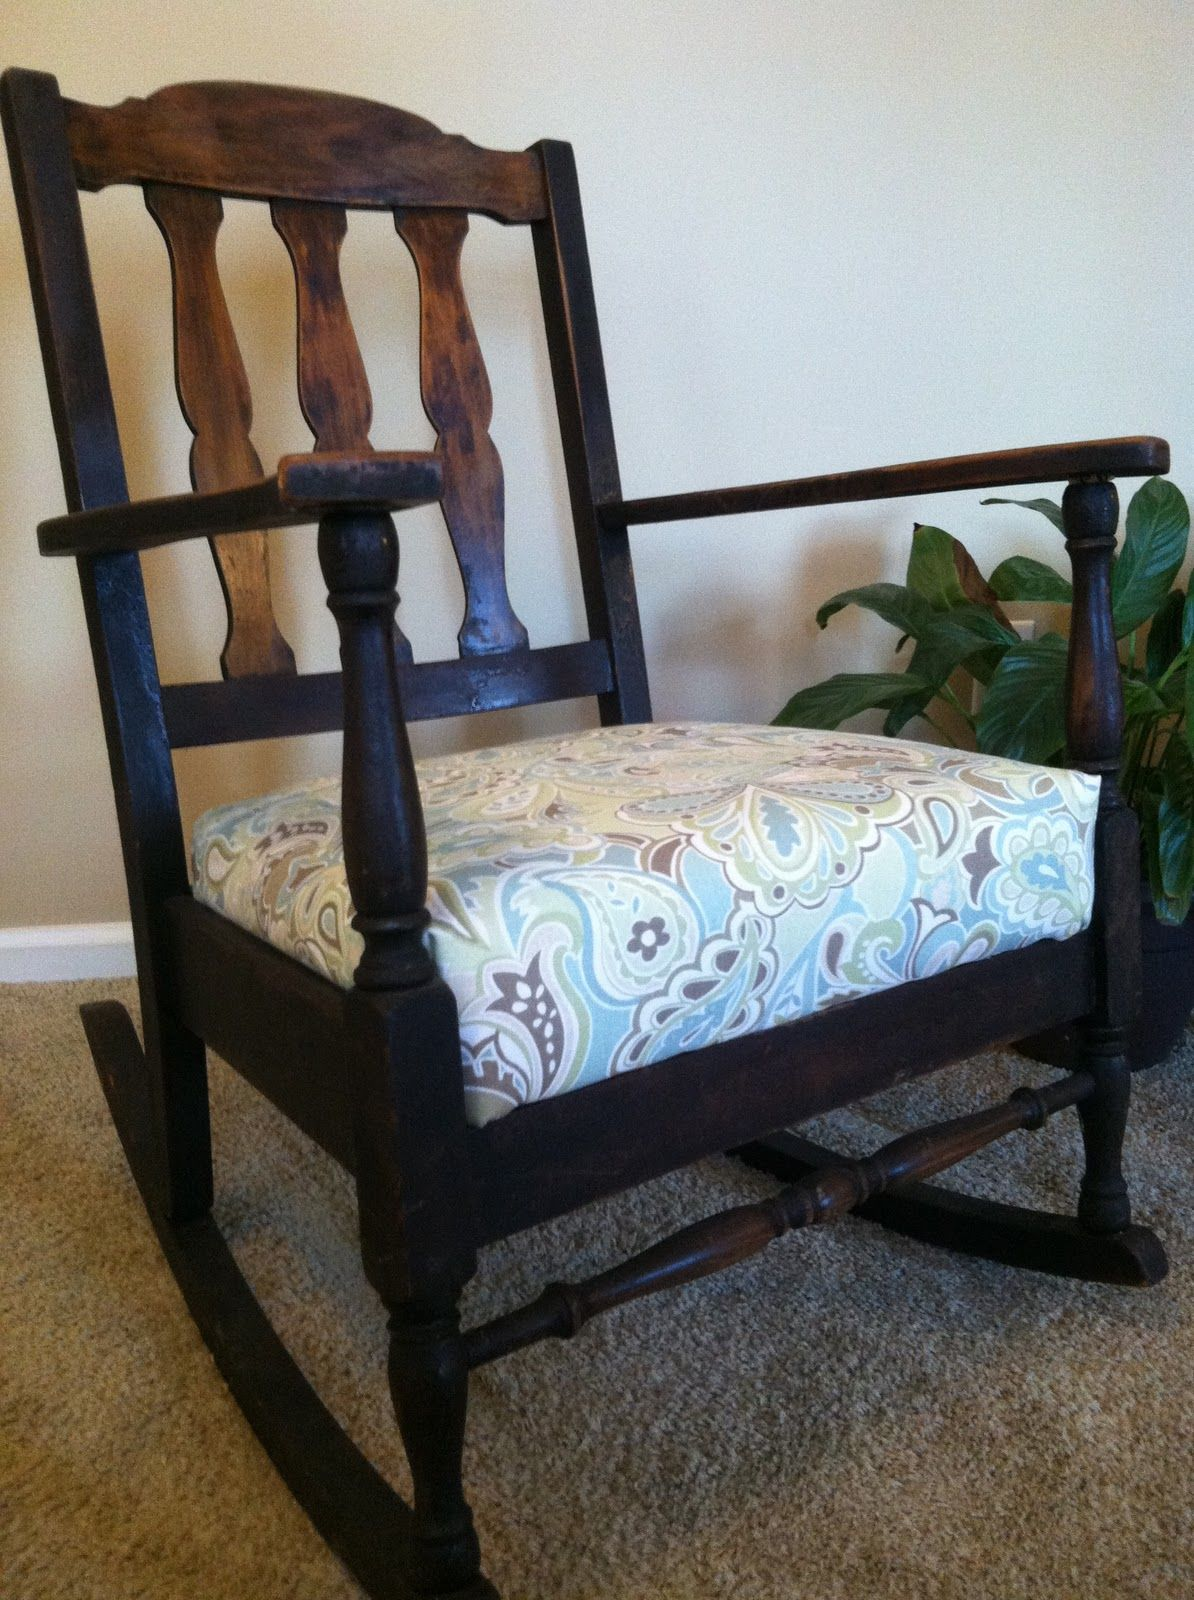 aunt priscilla has a rocking chair dining room covers set of 4 great ideas 15 inspired decorating solutions